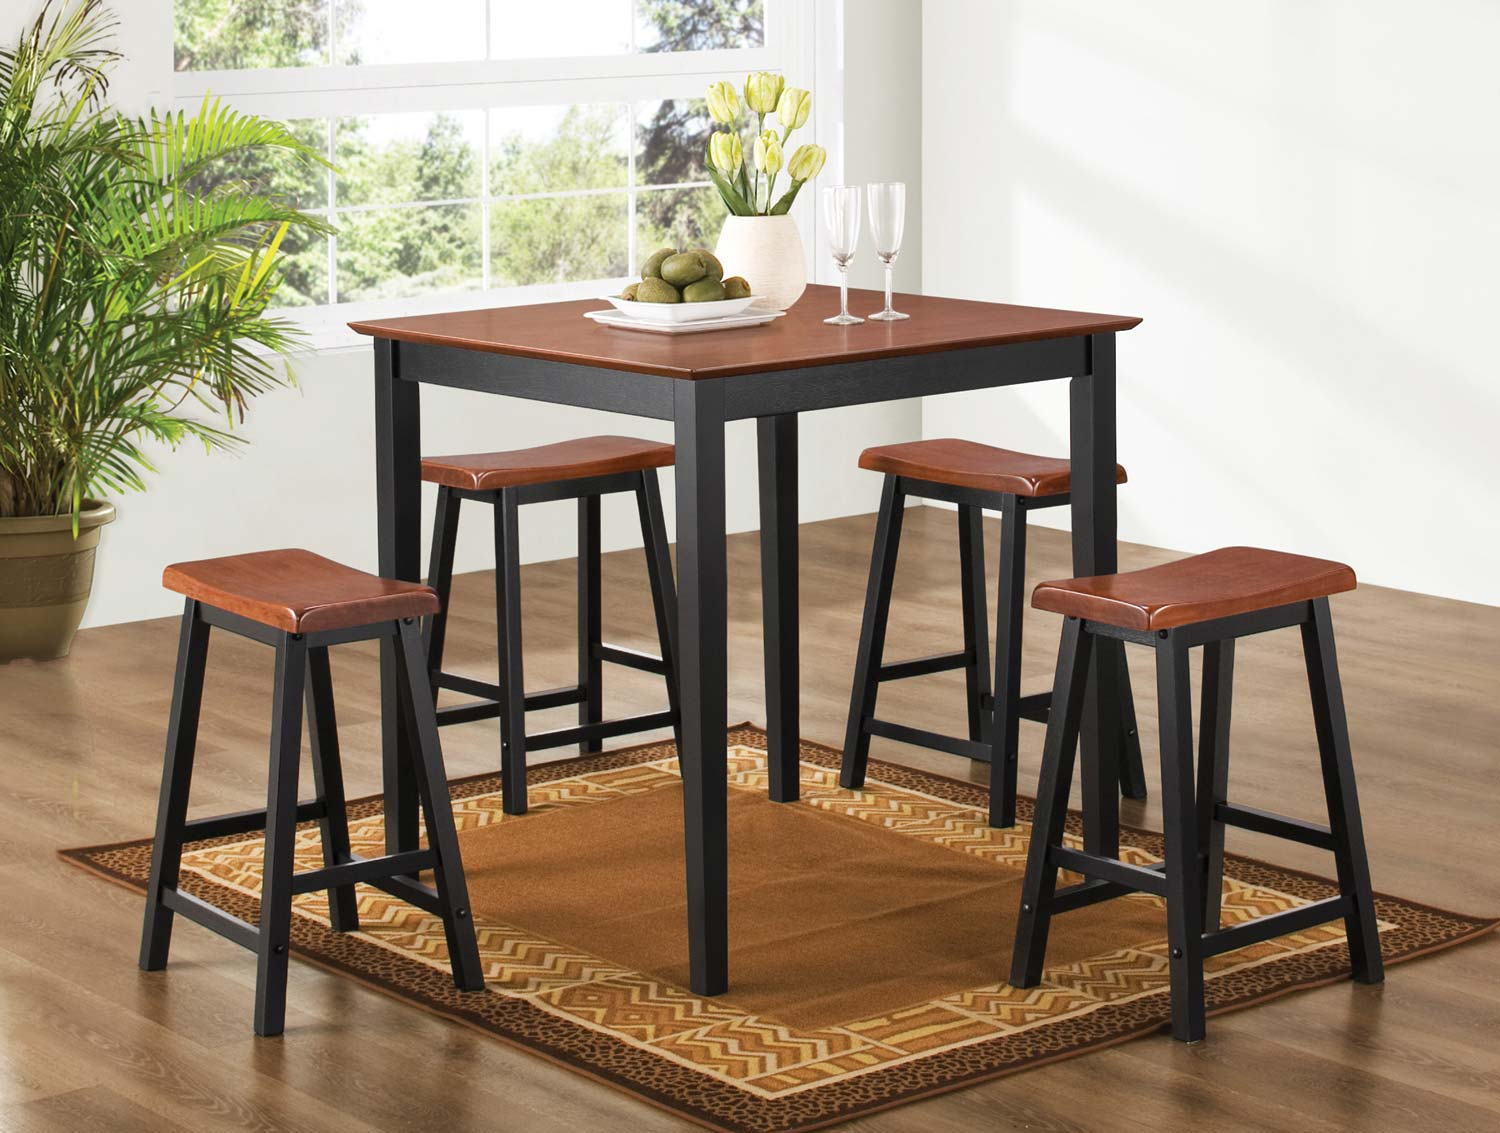 Coaster 150293N 5PC Counter Height Dining Set - Oak and Black